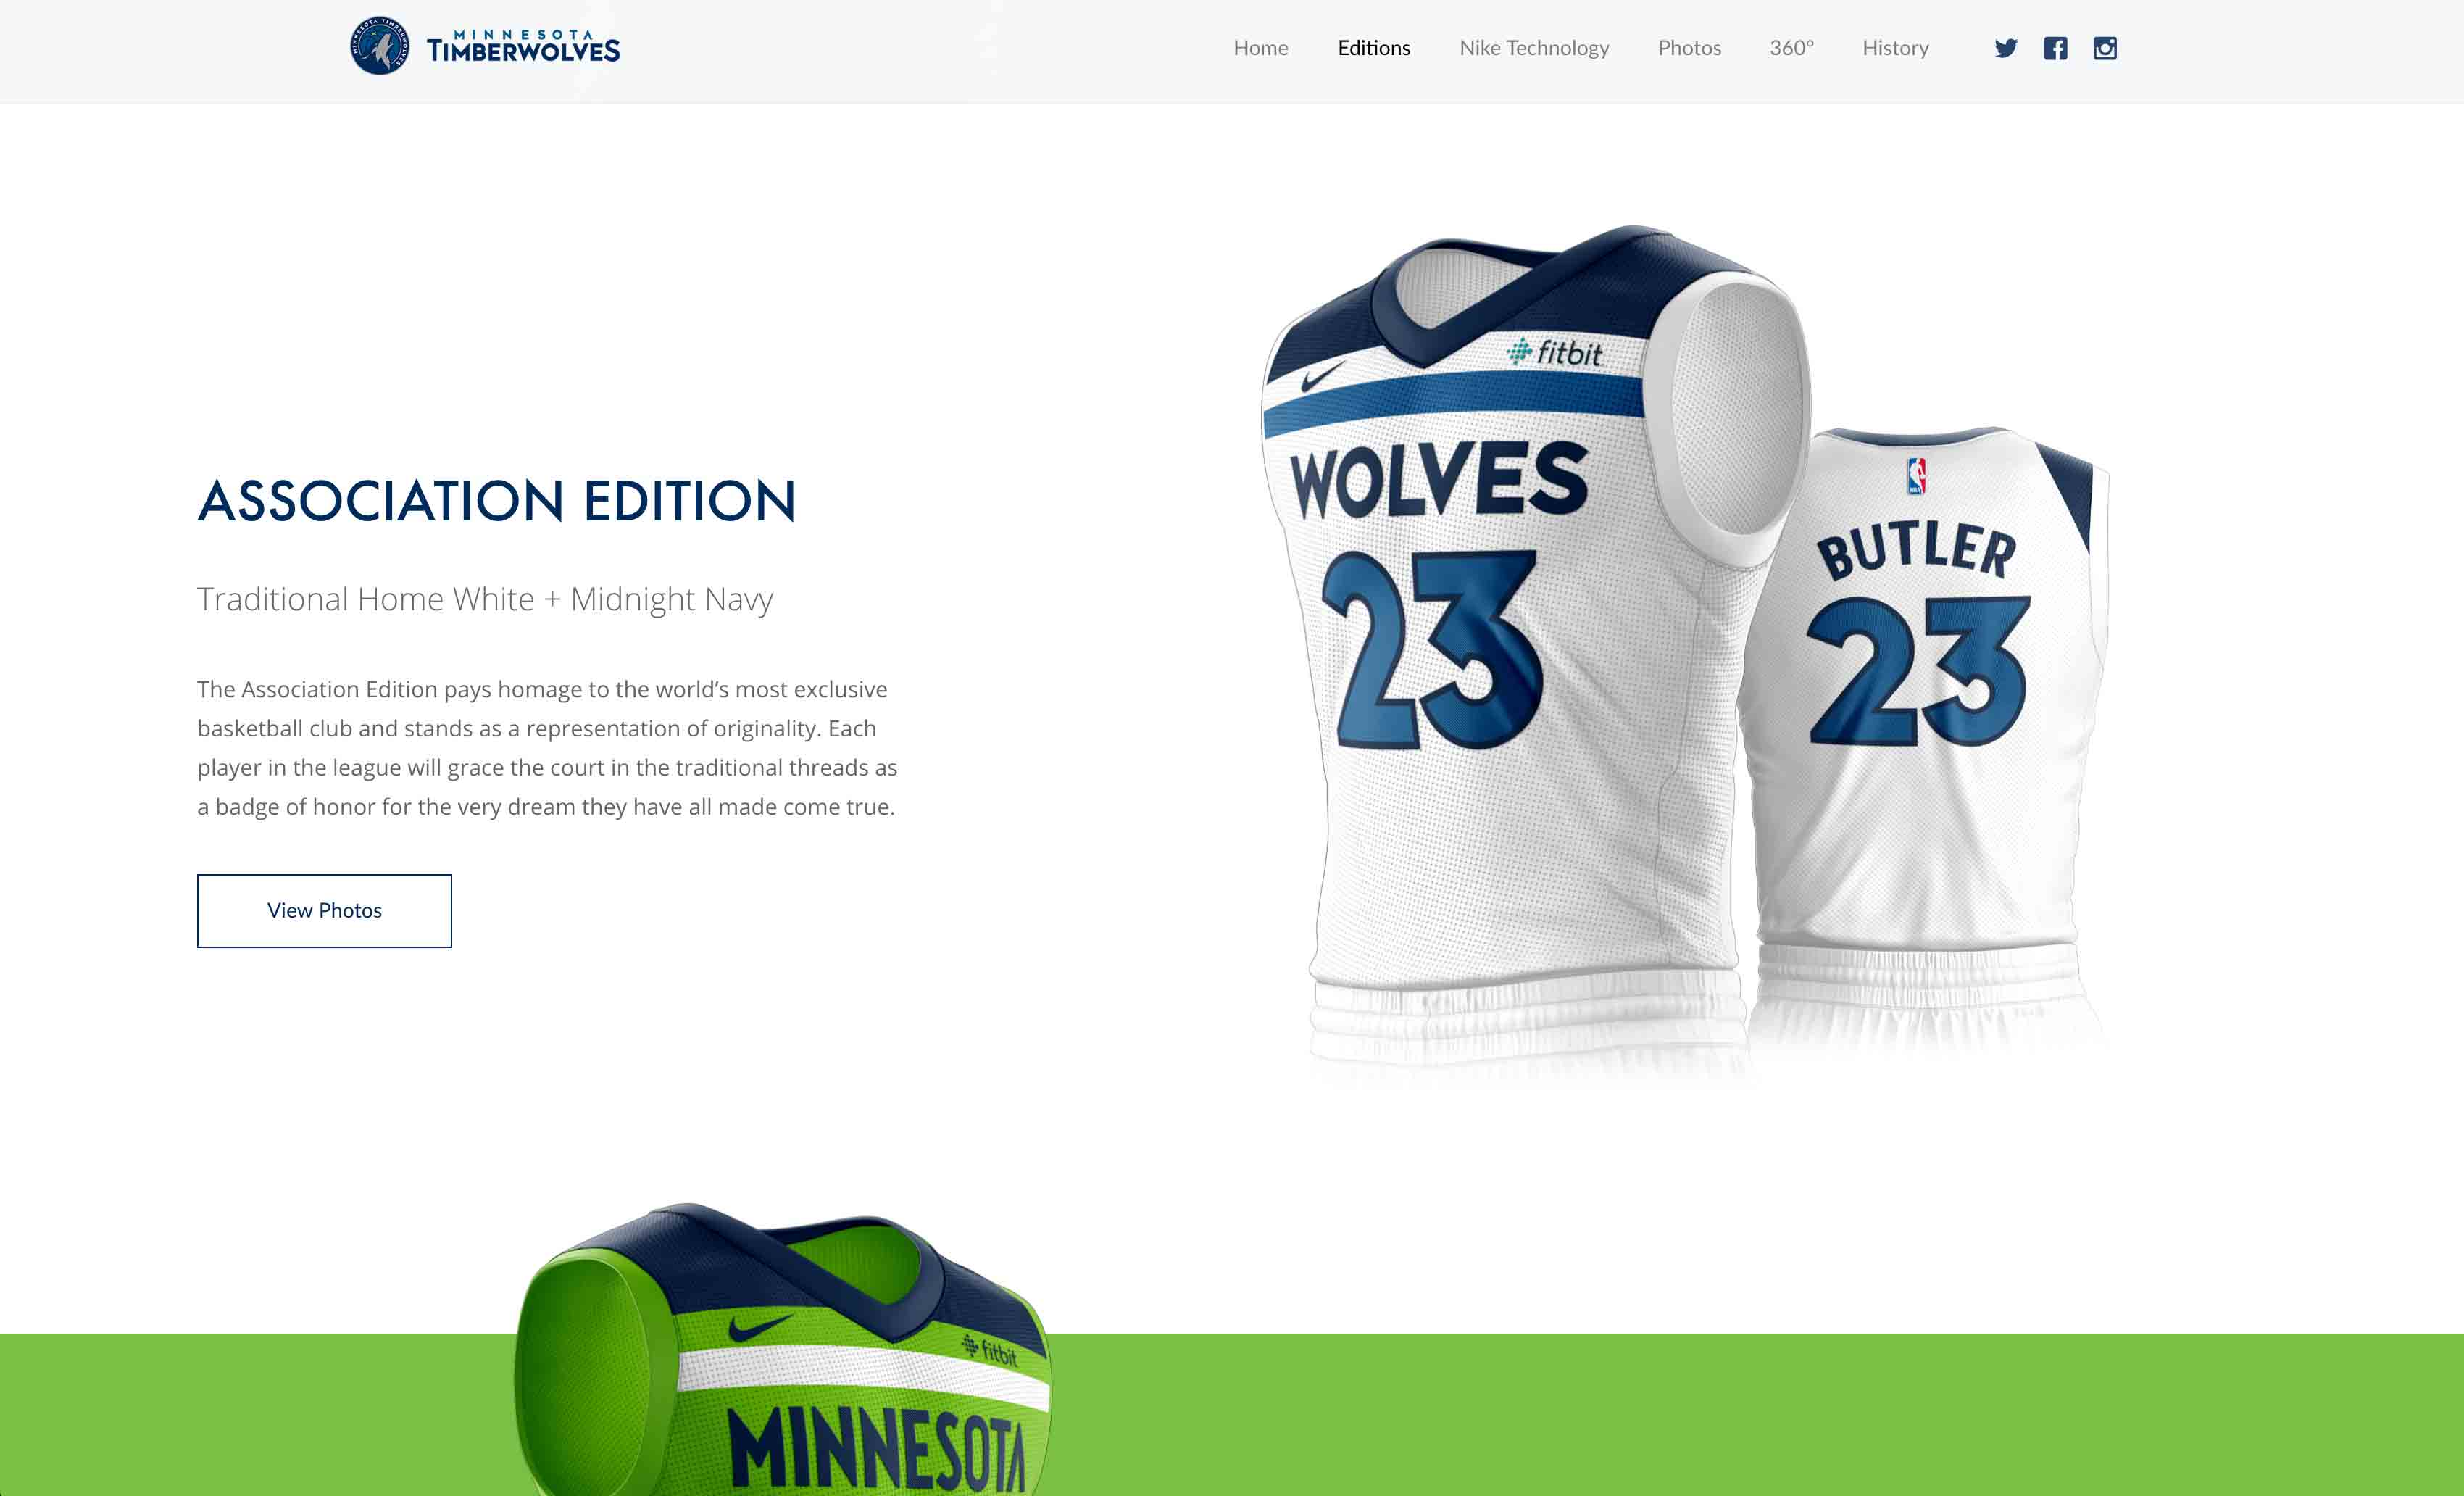 MN Timberwolves New Threads Project: Desktop View, Association Edition Section